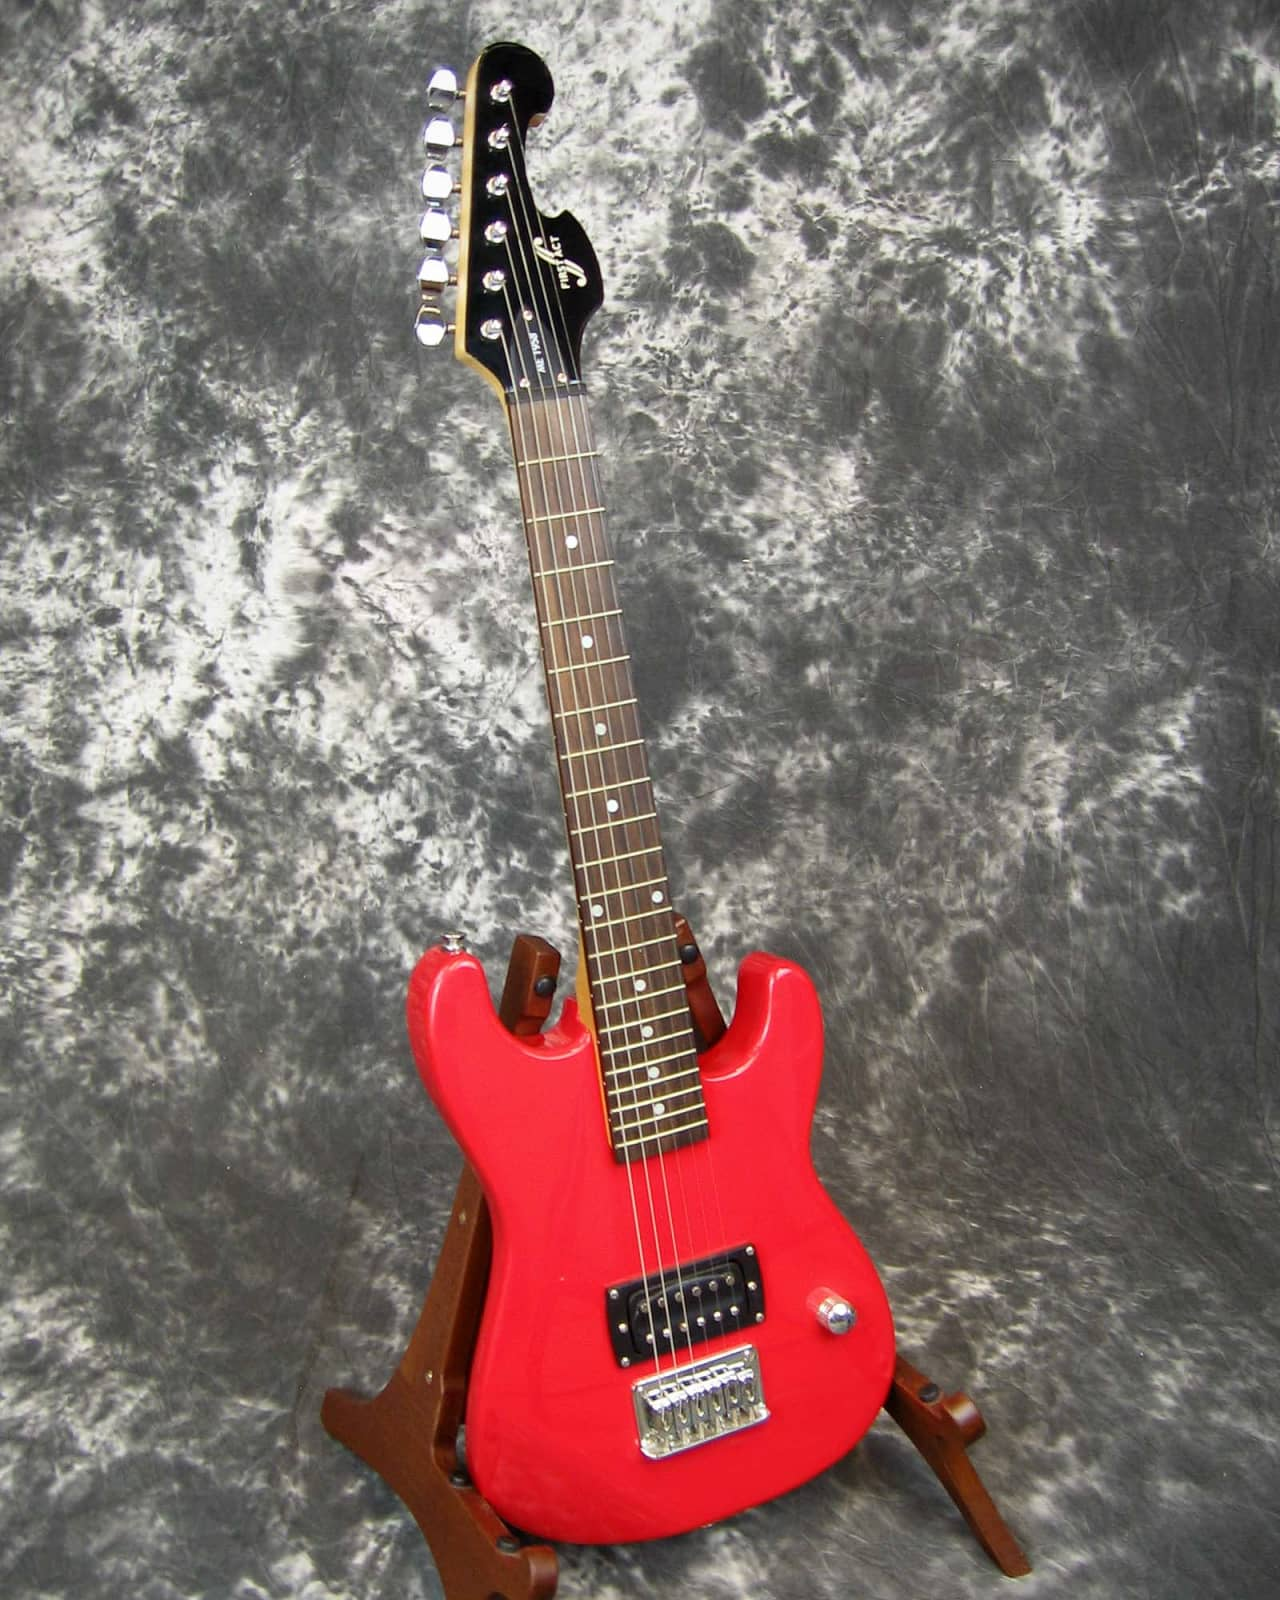 vg used first act me 1958 1 2 scale electric guitar reverb. Black Bedroom Furniture Sets. Home Design Ideas